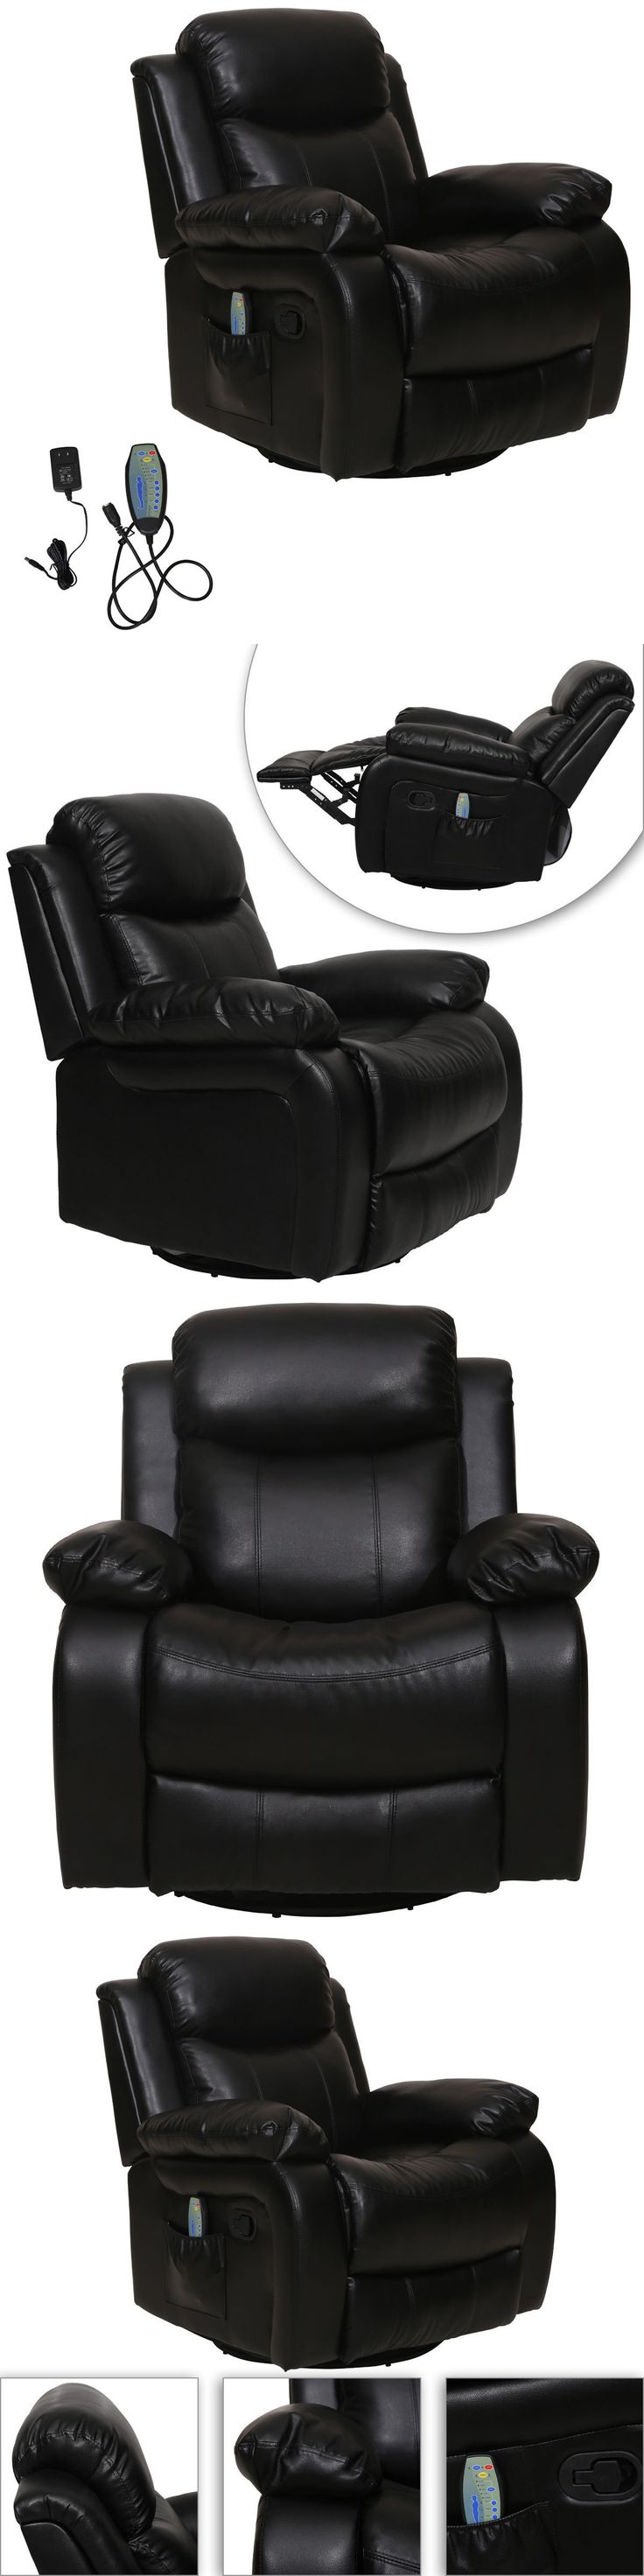 Electric Massage Chairs: Black Massage Chair Recliner Electric Deluxe Full Body Ergonomic Shiatsu Lounge -> BUY IT NOW ONLY: $269.99 on eBay!